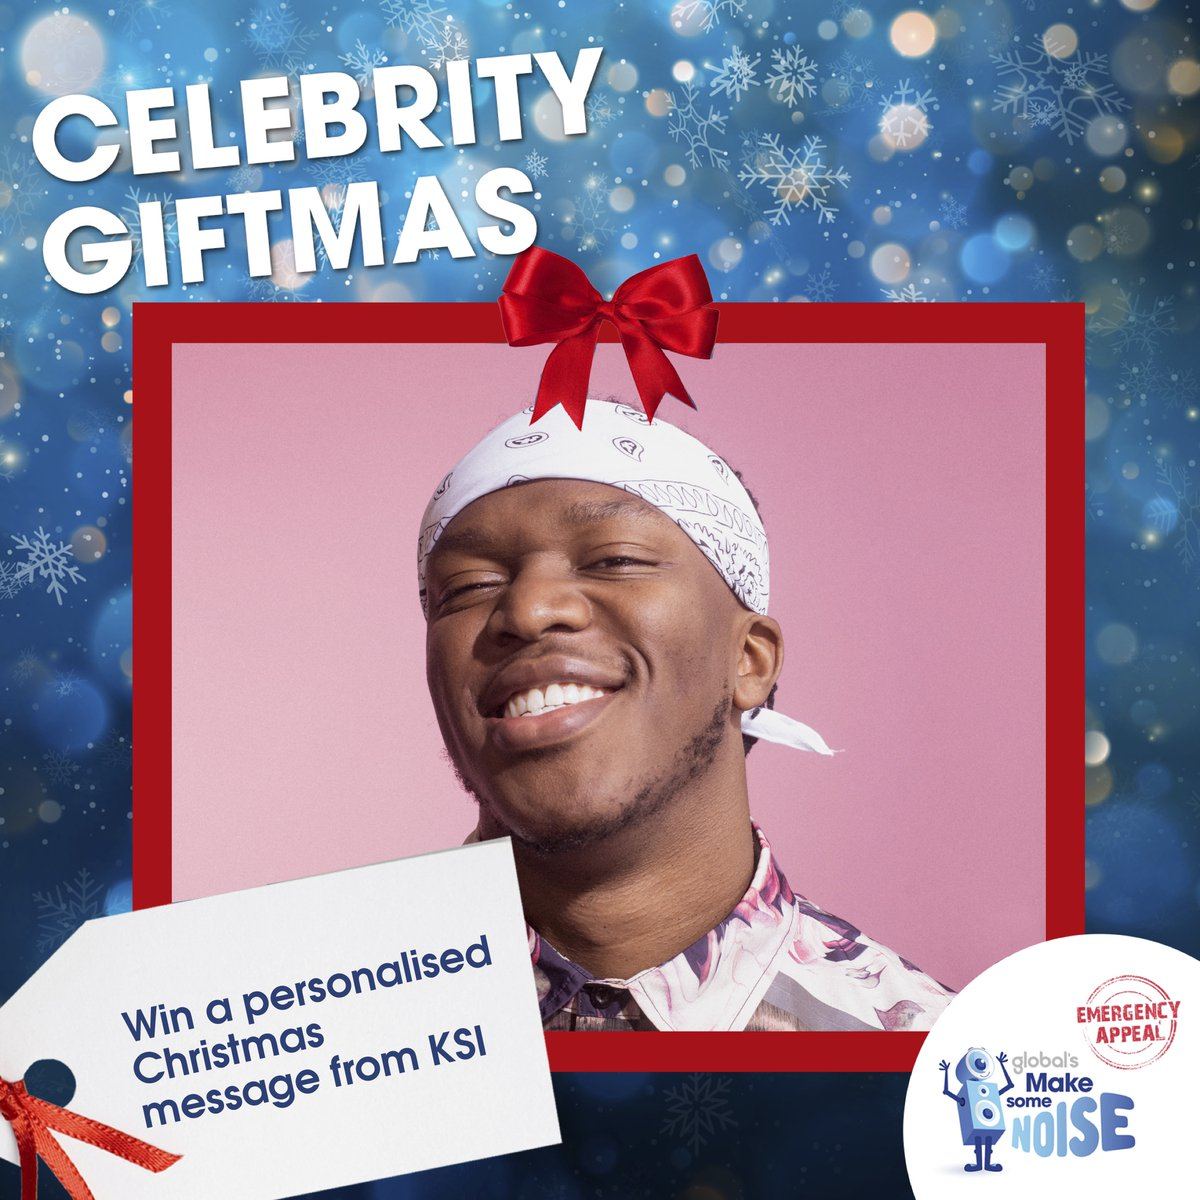 Know someone that would 𝘙𝘦𝘢𝘭𝘭𝘺 𝘓𝘰𝘷𝘦 a #CelebrityGiftmas personalised video message none other than @KSI? Get involved... 👀 🎁